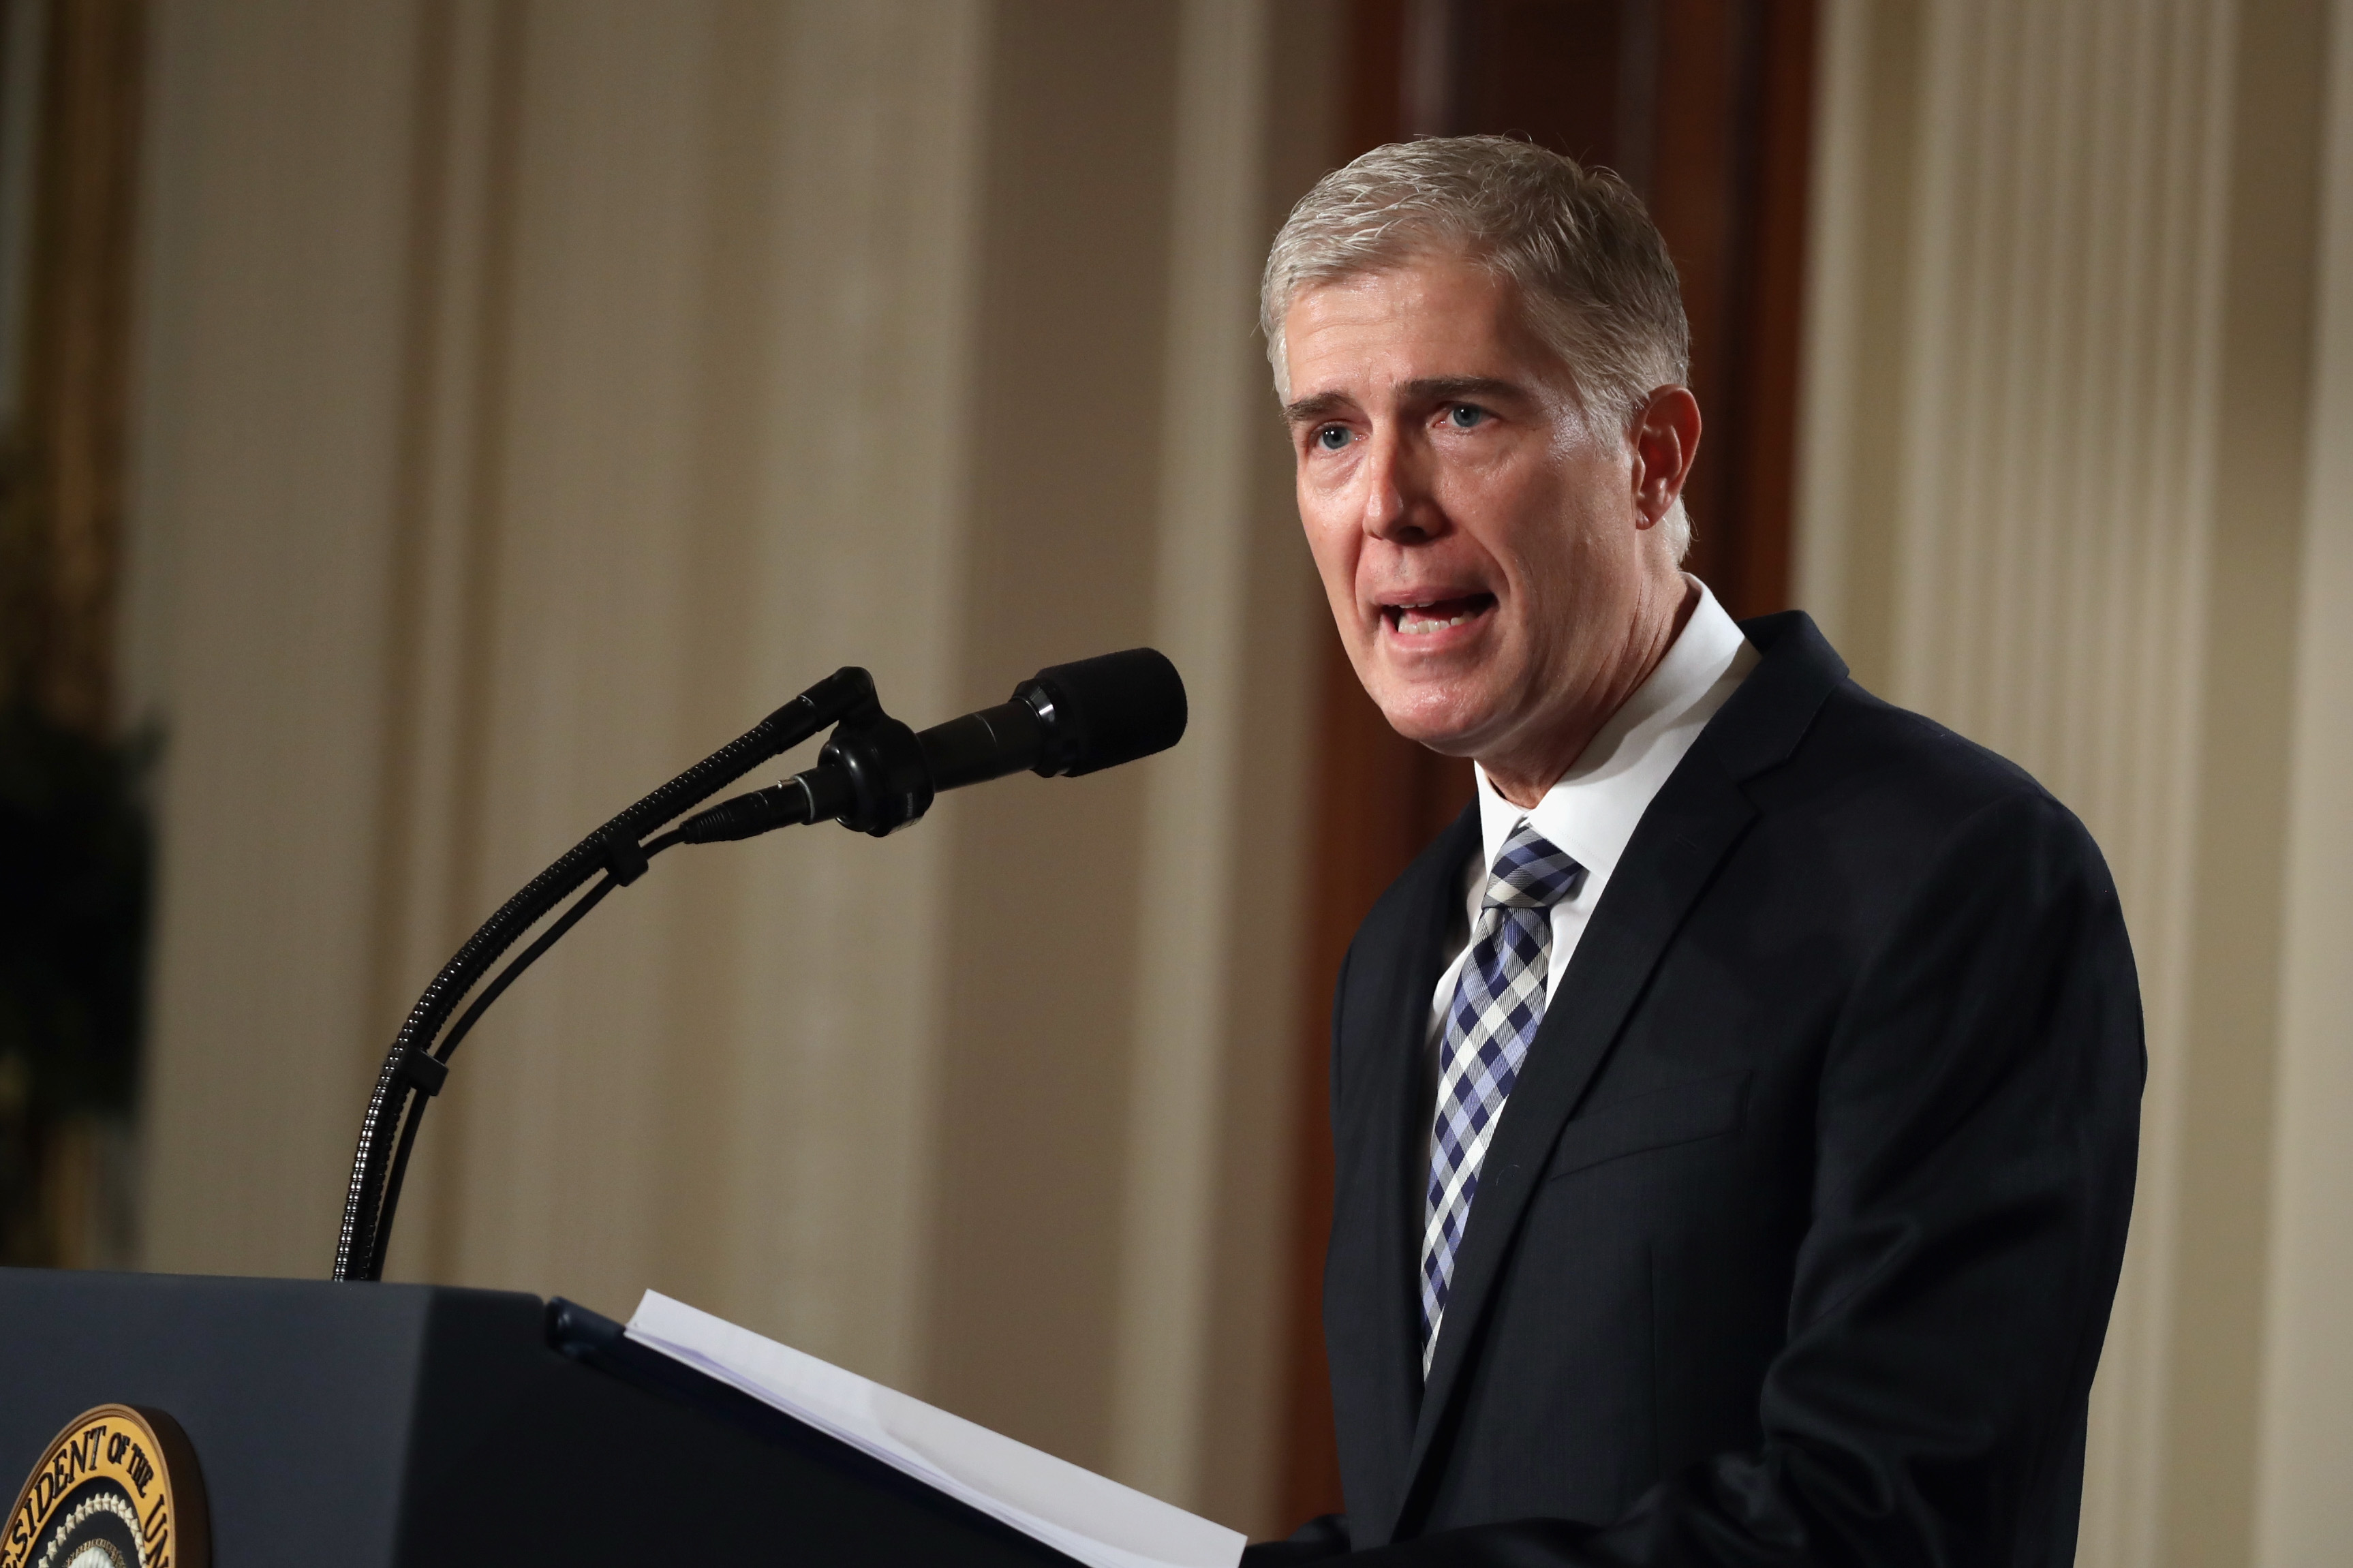 Judge Neil Gorsuch delivers brief remarks after being nominated by President Trump to the Supreme Court on Tuesday. (Getty Images)